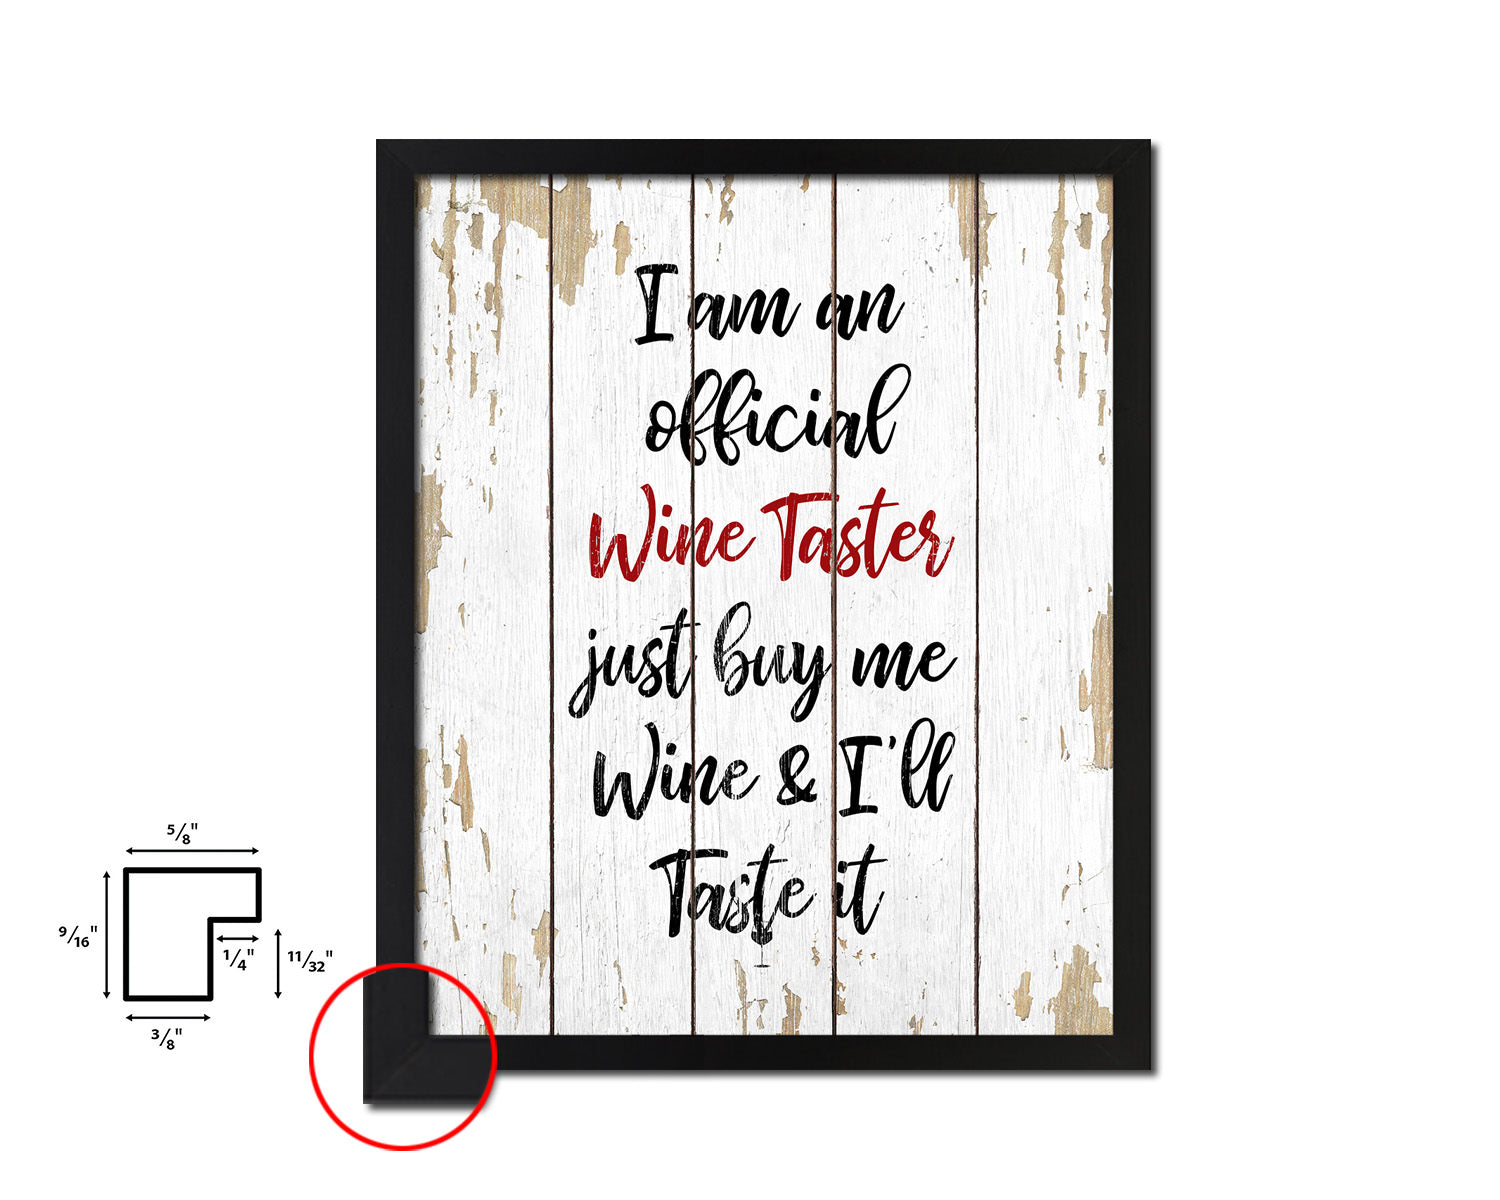 I am an official wine taster Quote Wood Framed Print Wall Decor Art Gifts